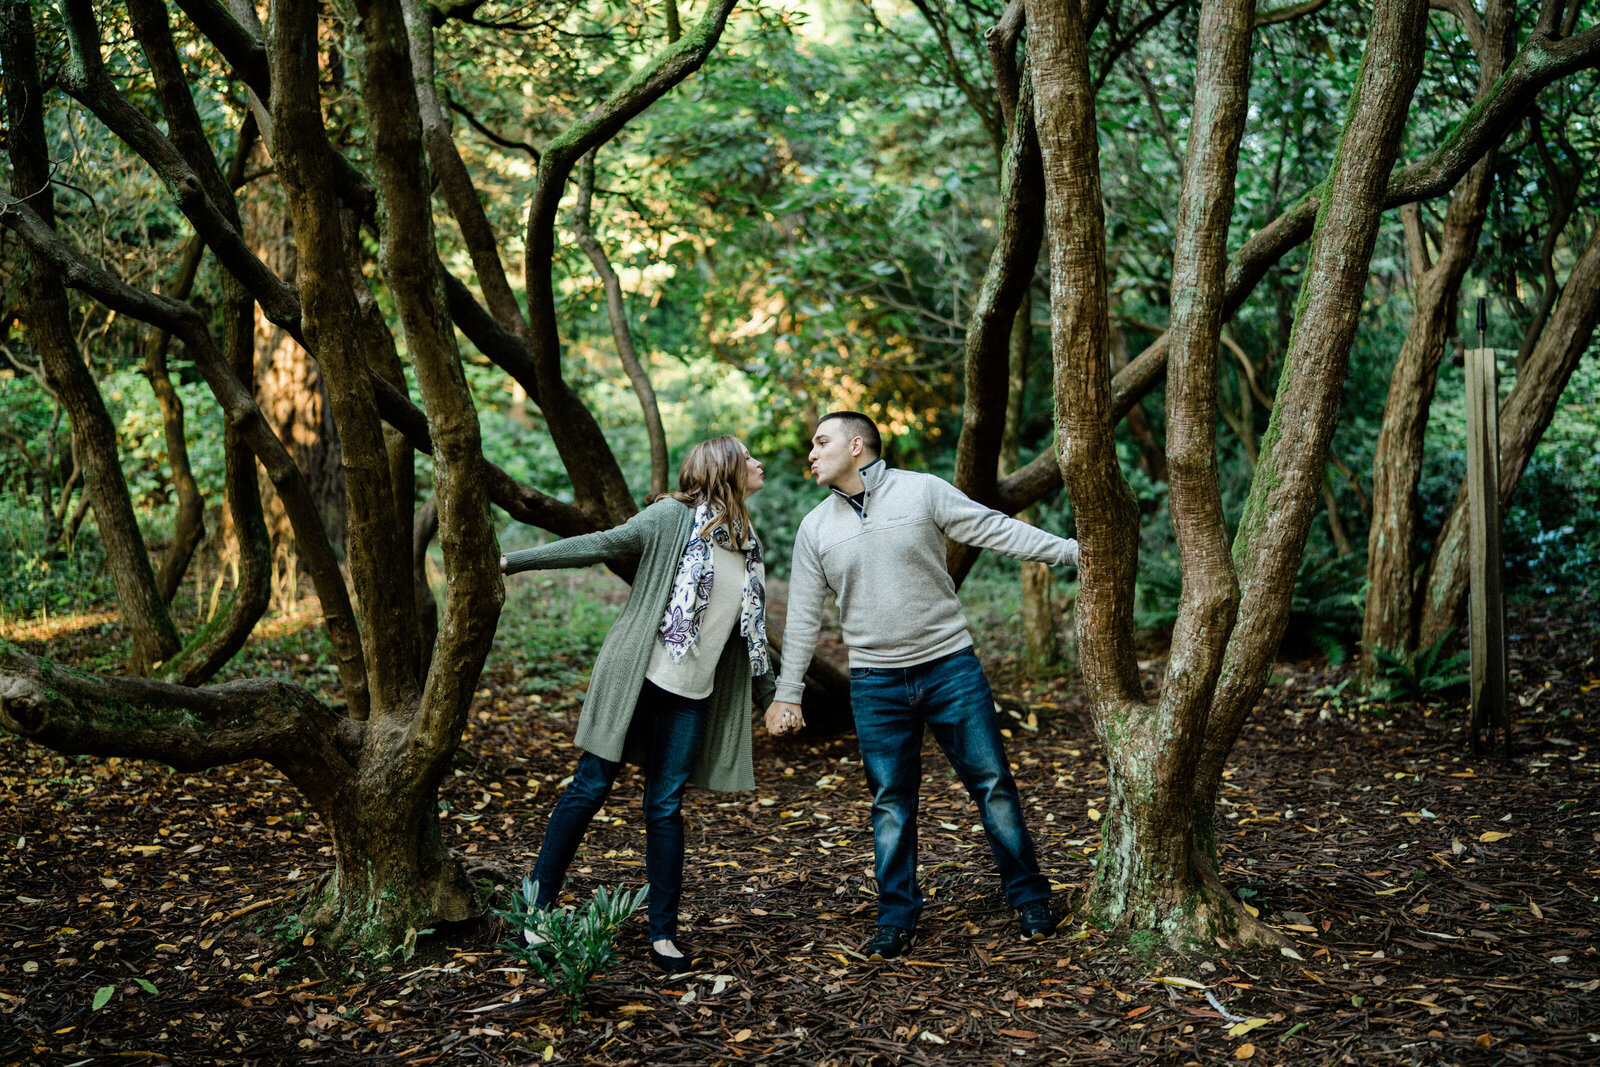 creative engagement photos in seattle at university of washington arboretum as coupe holds hands near large trees